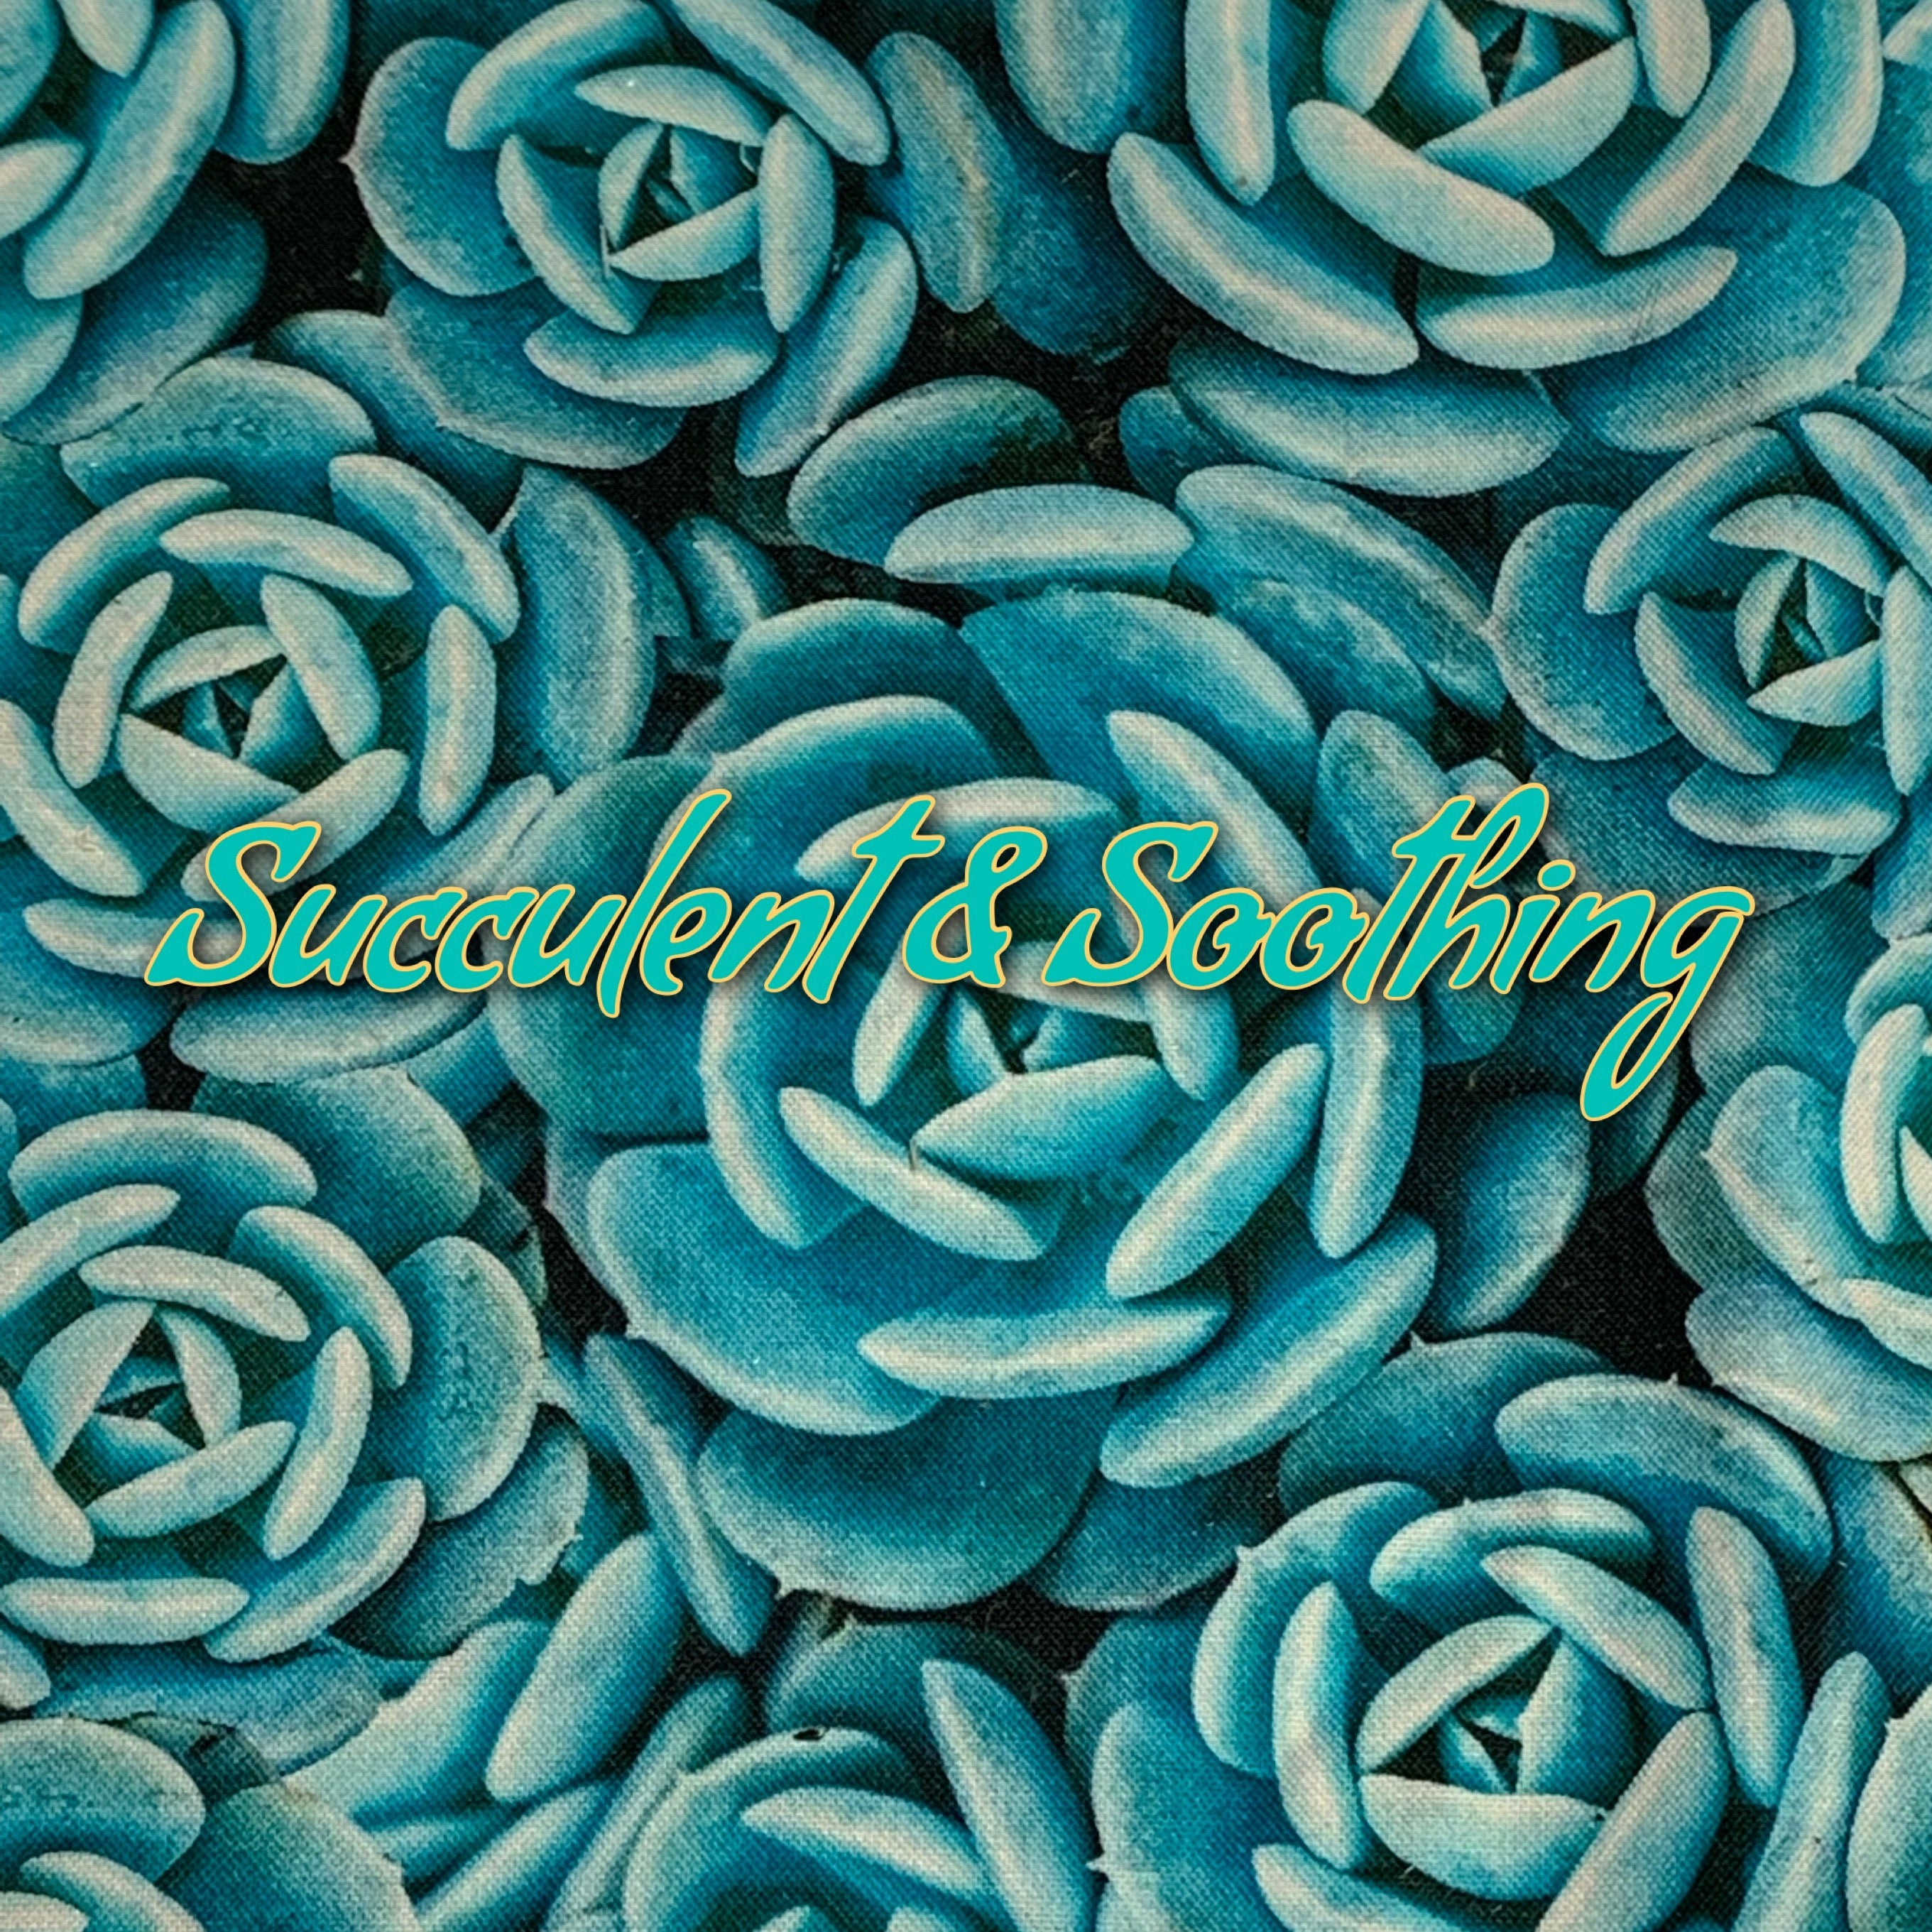 Succulent & Soothing - Quilter's Cotton